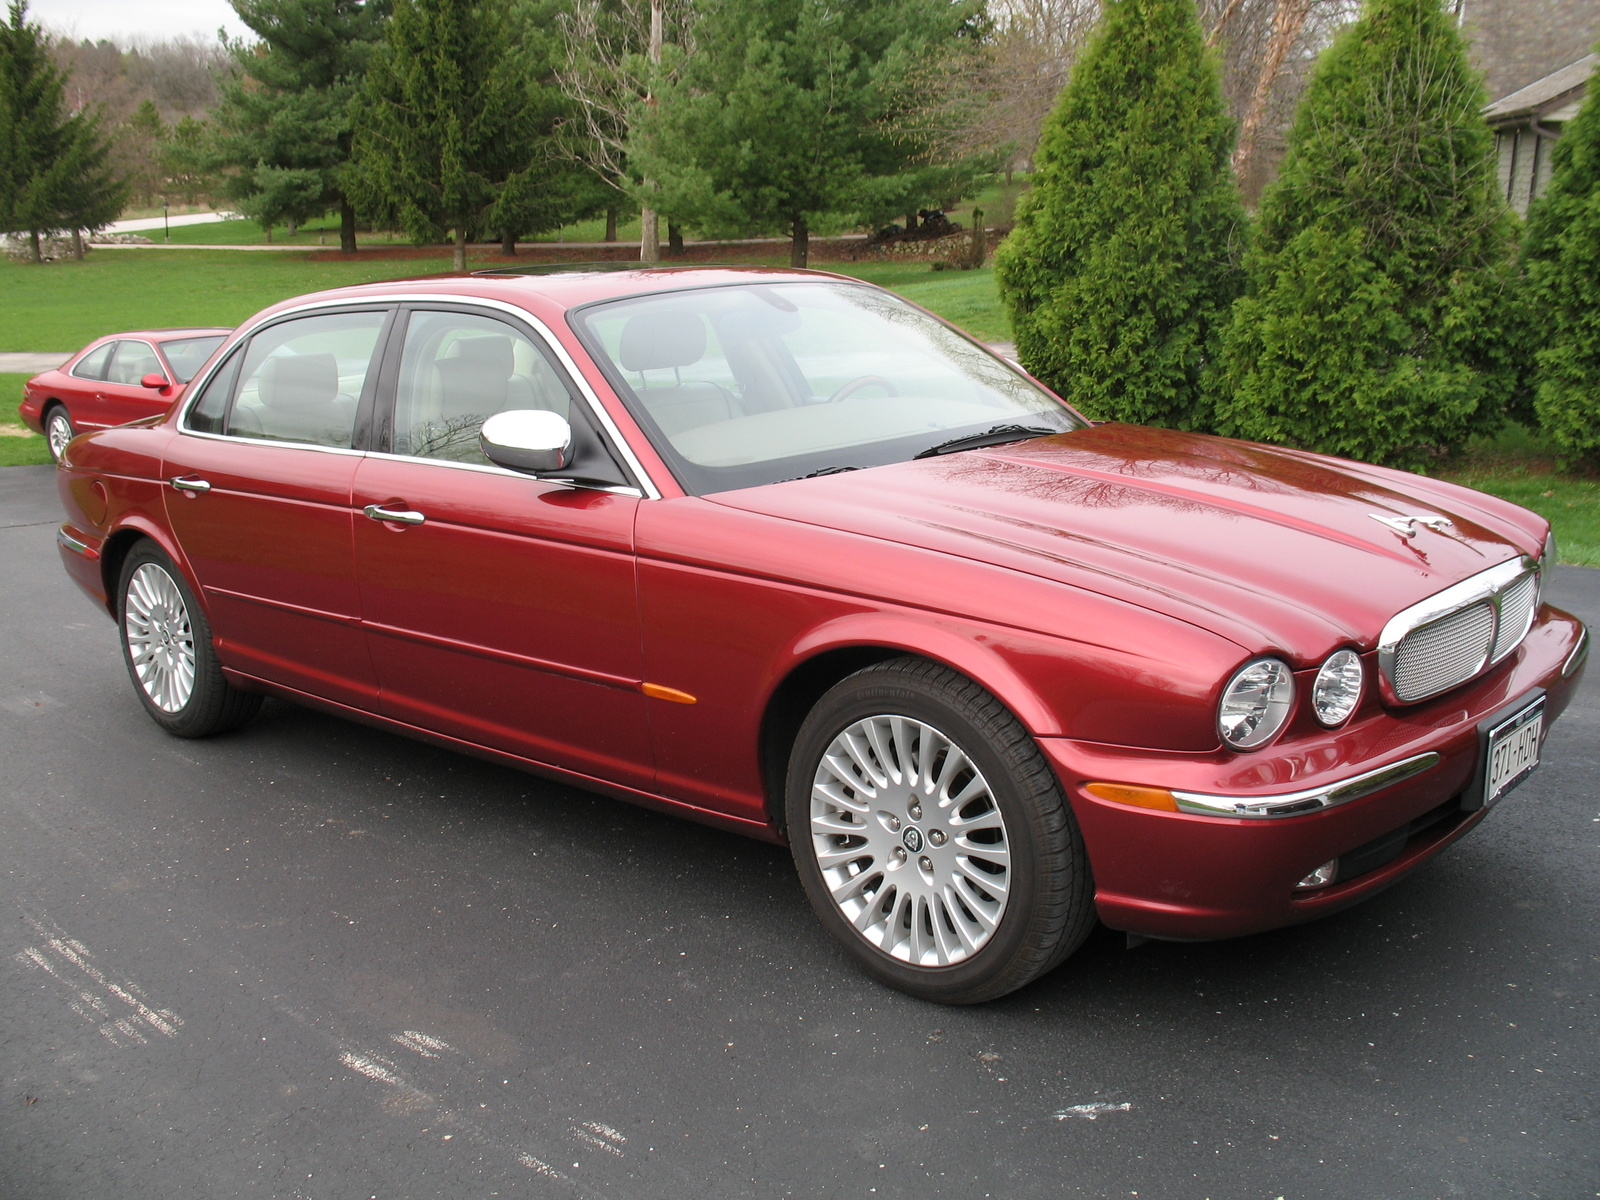 2005 Jaguar XJ-Series 4 Dr Vanden Plas Sedan picture